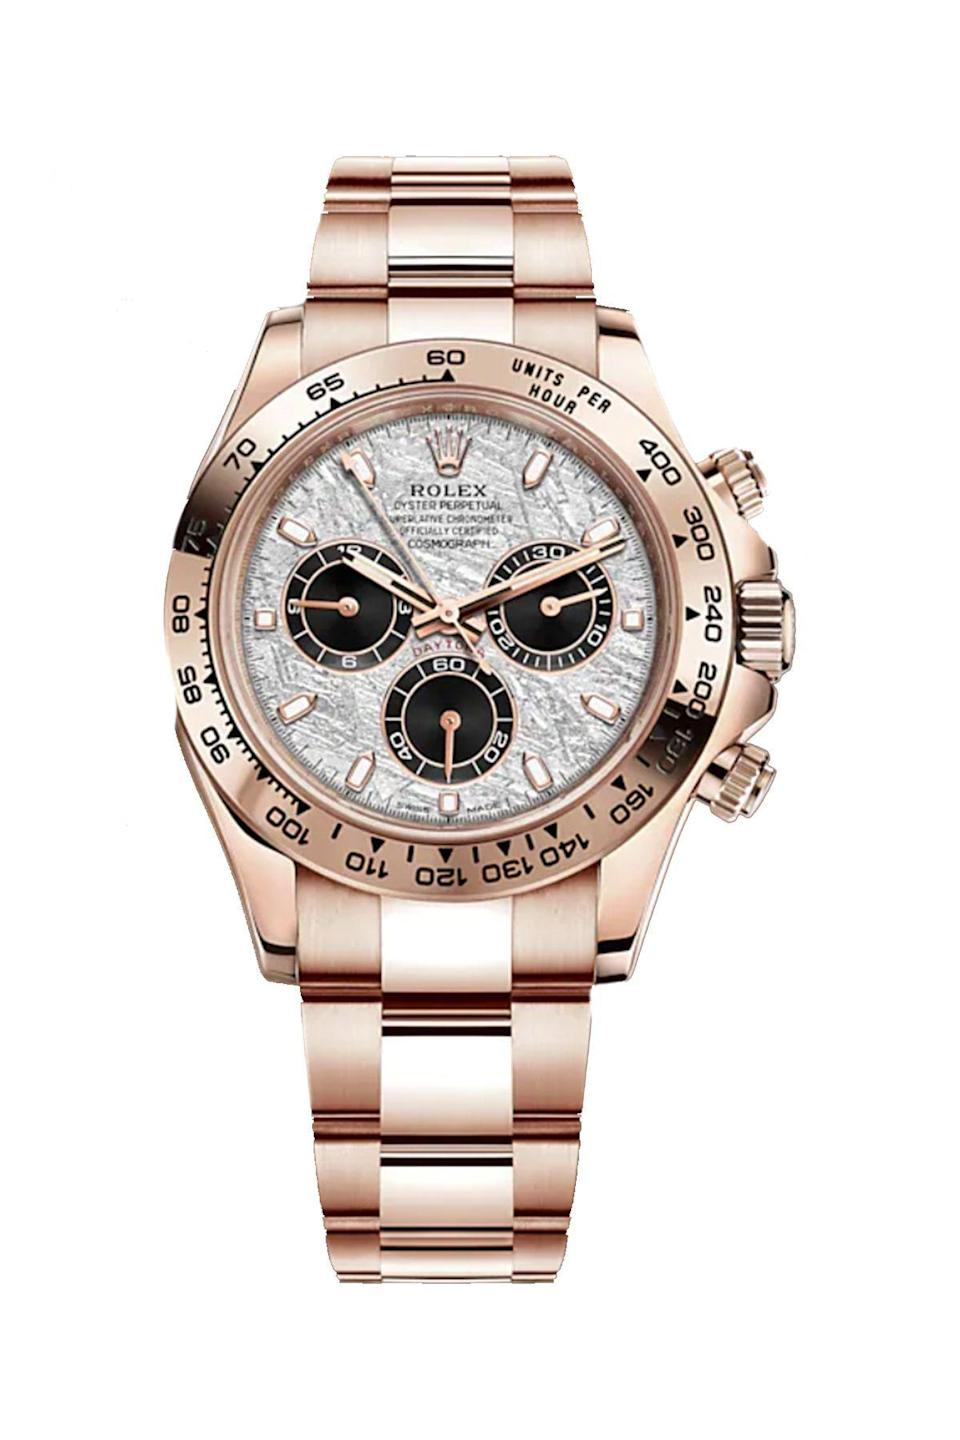 """<p><strong>Rolex</strong></p><p>rolex.com</p><p><strong>$43700.00</strong></p><p><a href=""""https://www.rolex.com/watches/cosmograph-daytona/m116505-0014.html"""" rel=""""nofollow noopener"""" target=""""_blank"""" data-ylk=""""slk:Shop Now"""" class=""""link rapid-noclick-resp"""">Shop Now</a></p><p>If you want to pull gazes, wearing this rose gold stunner will surely accomplish the task. </p>"""